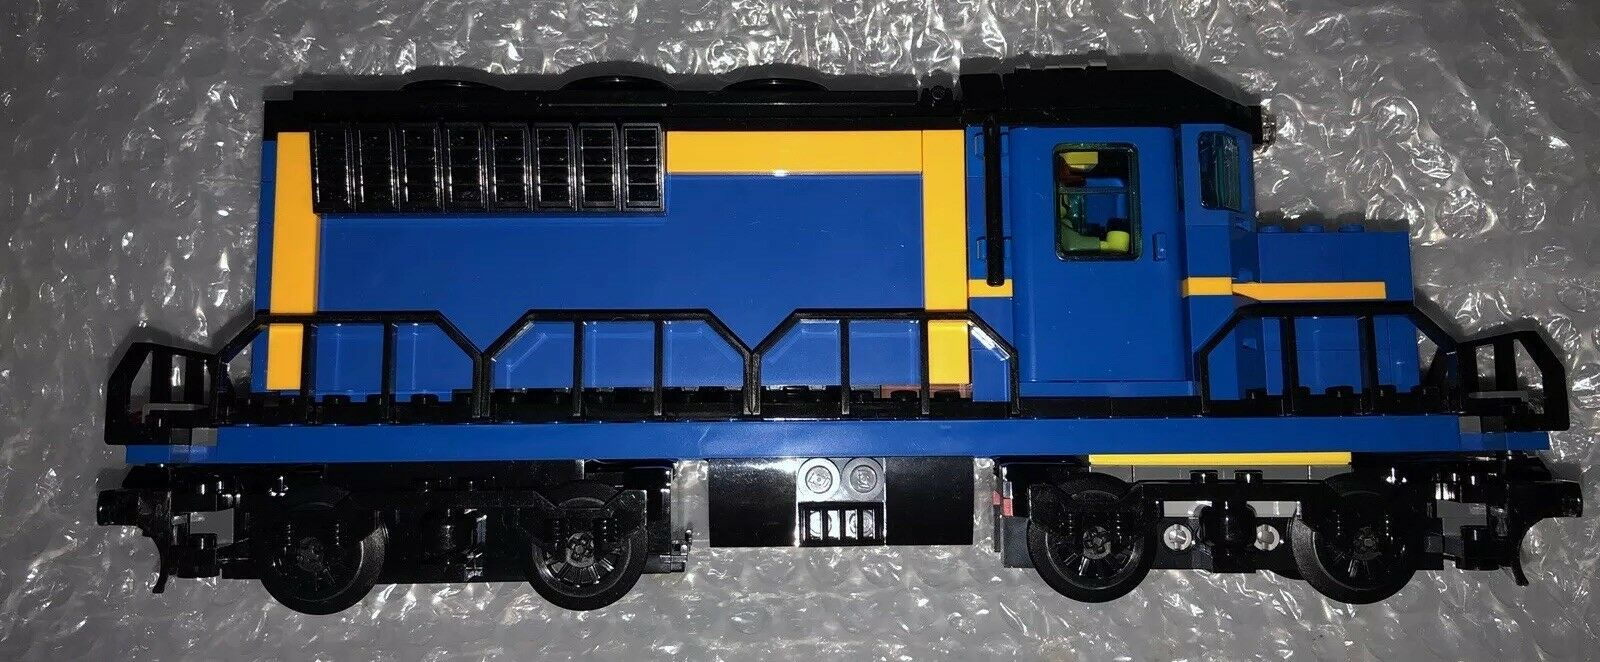 Lego City Cargo Freight Train Railway Engine from 60052 new with power